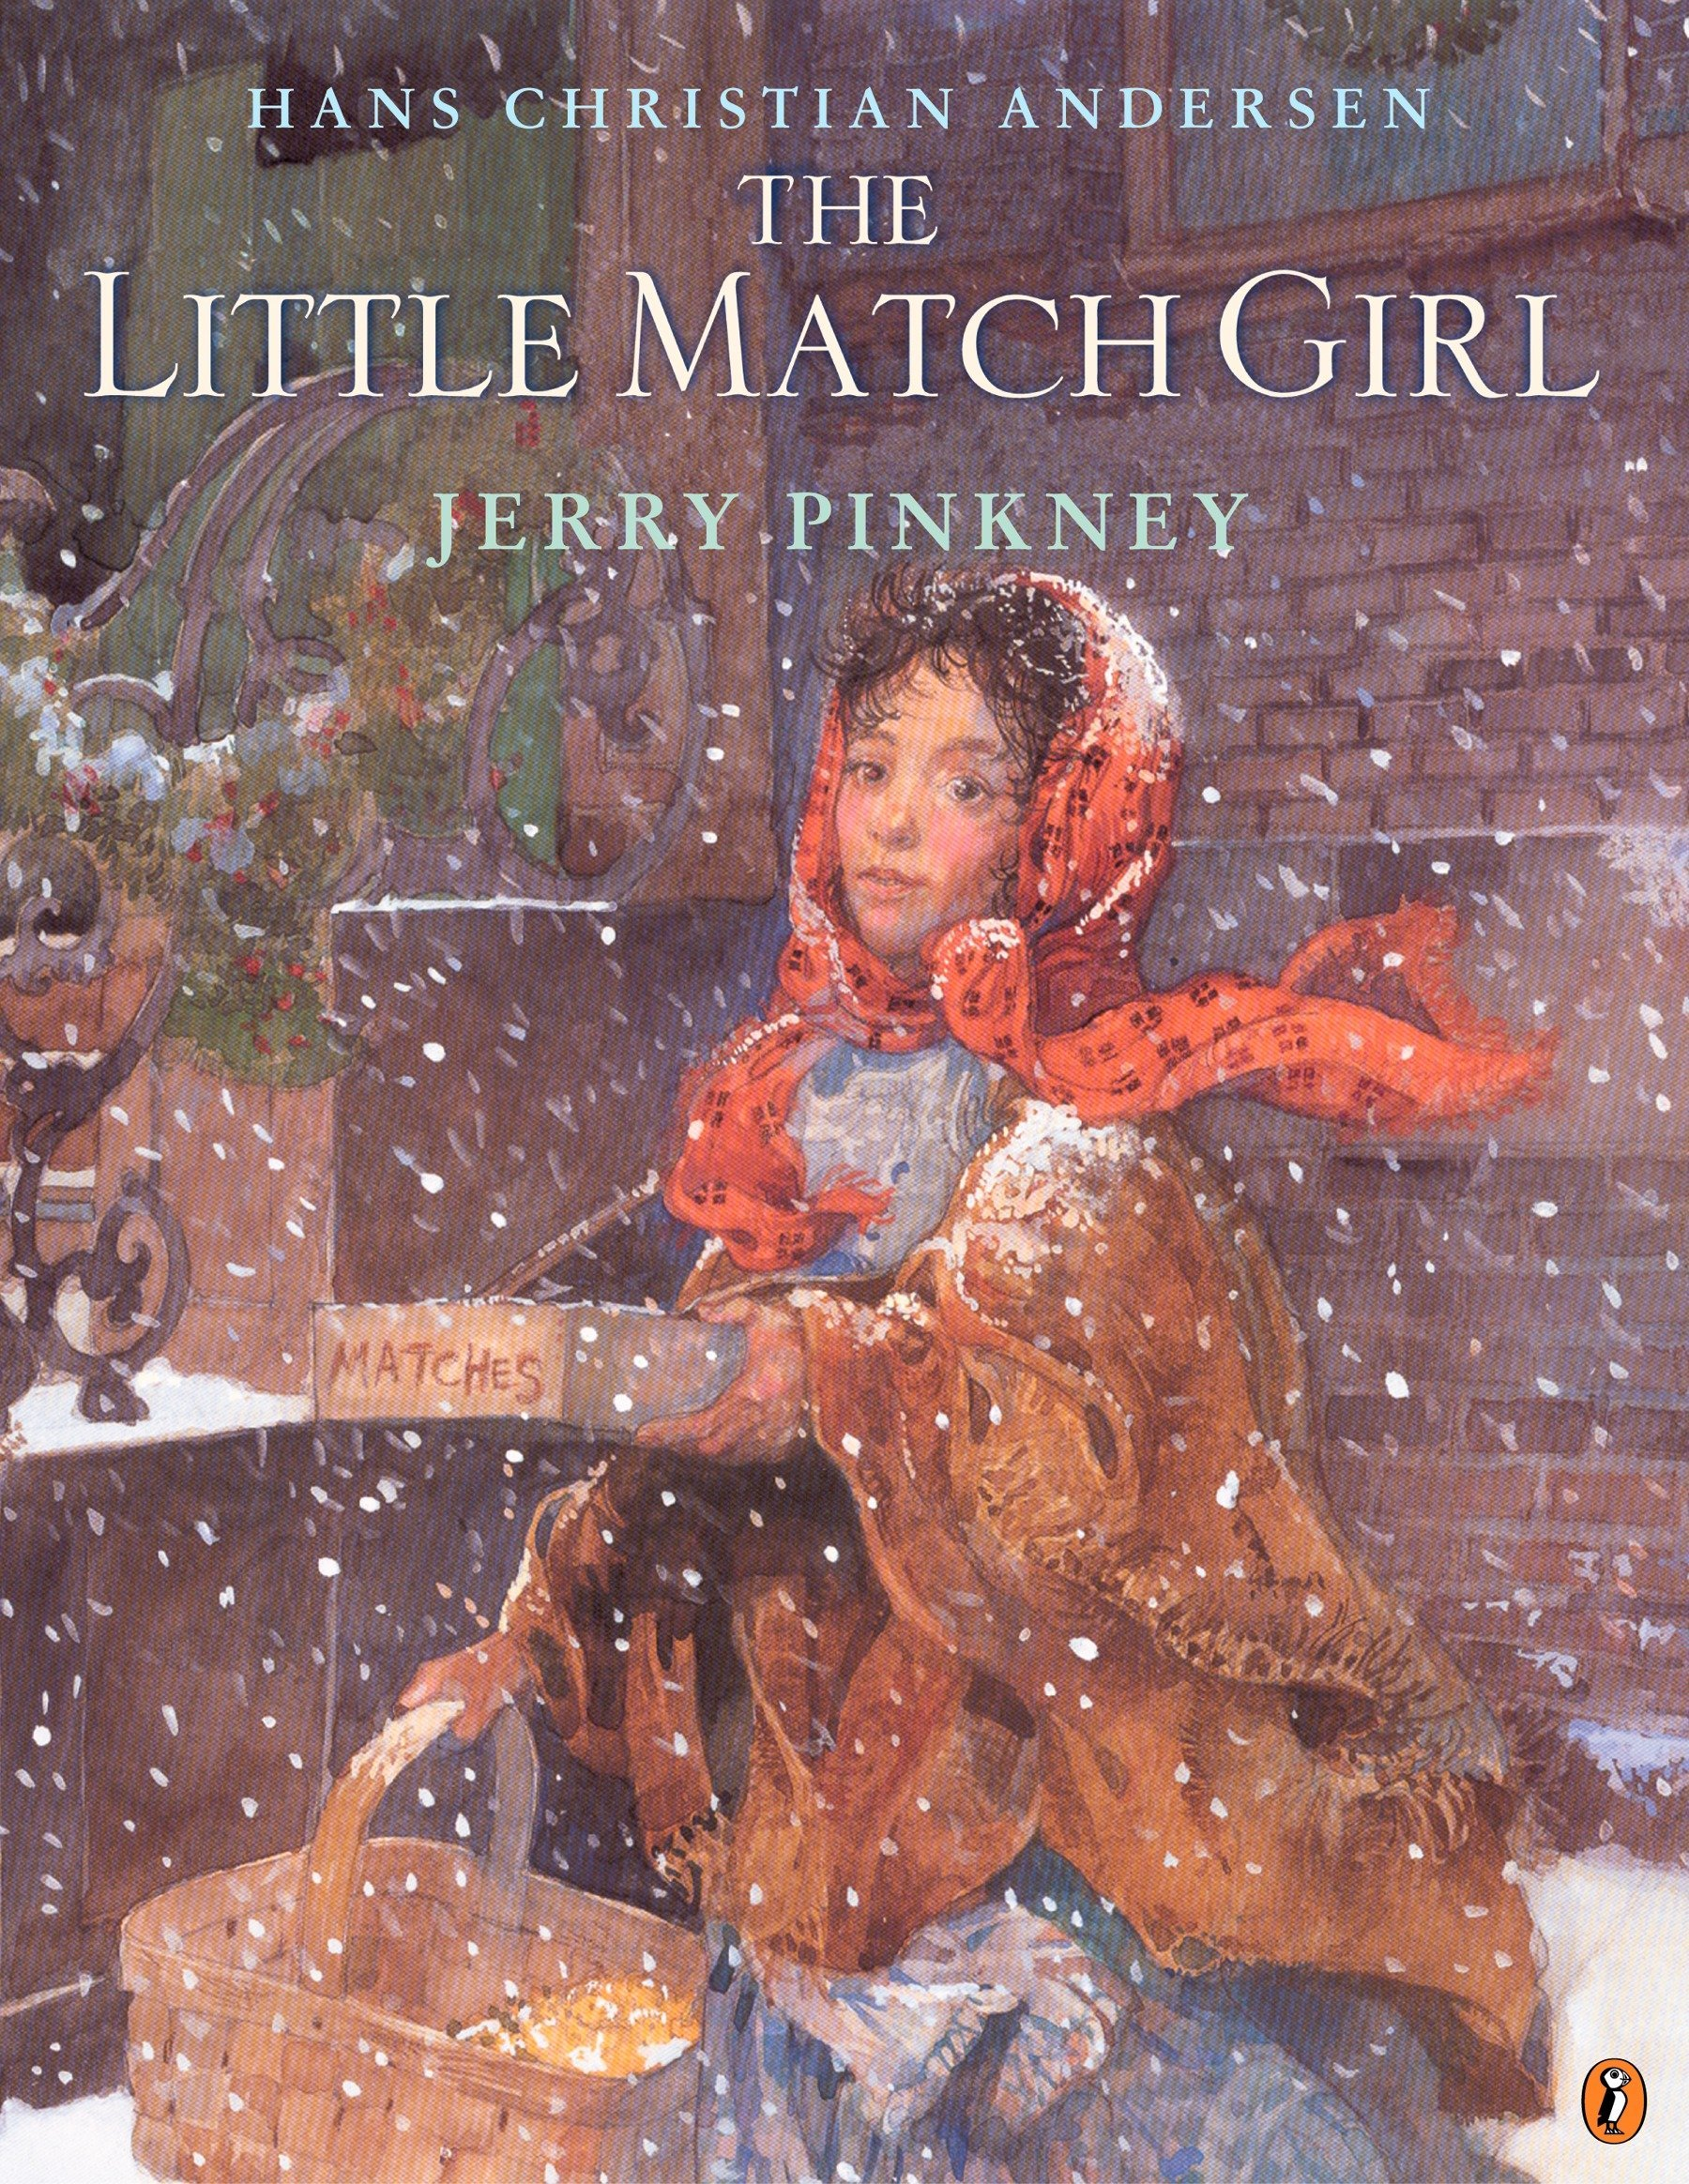 The Best Christmas Picture Books - The Little Match Girl.jpg